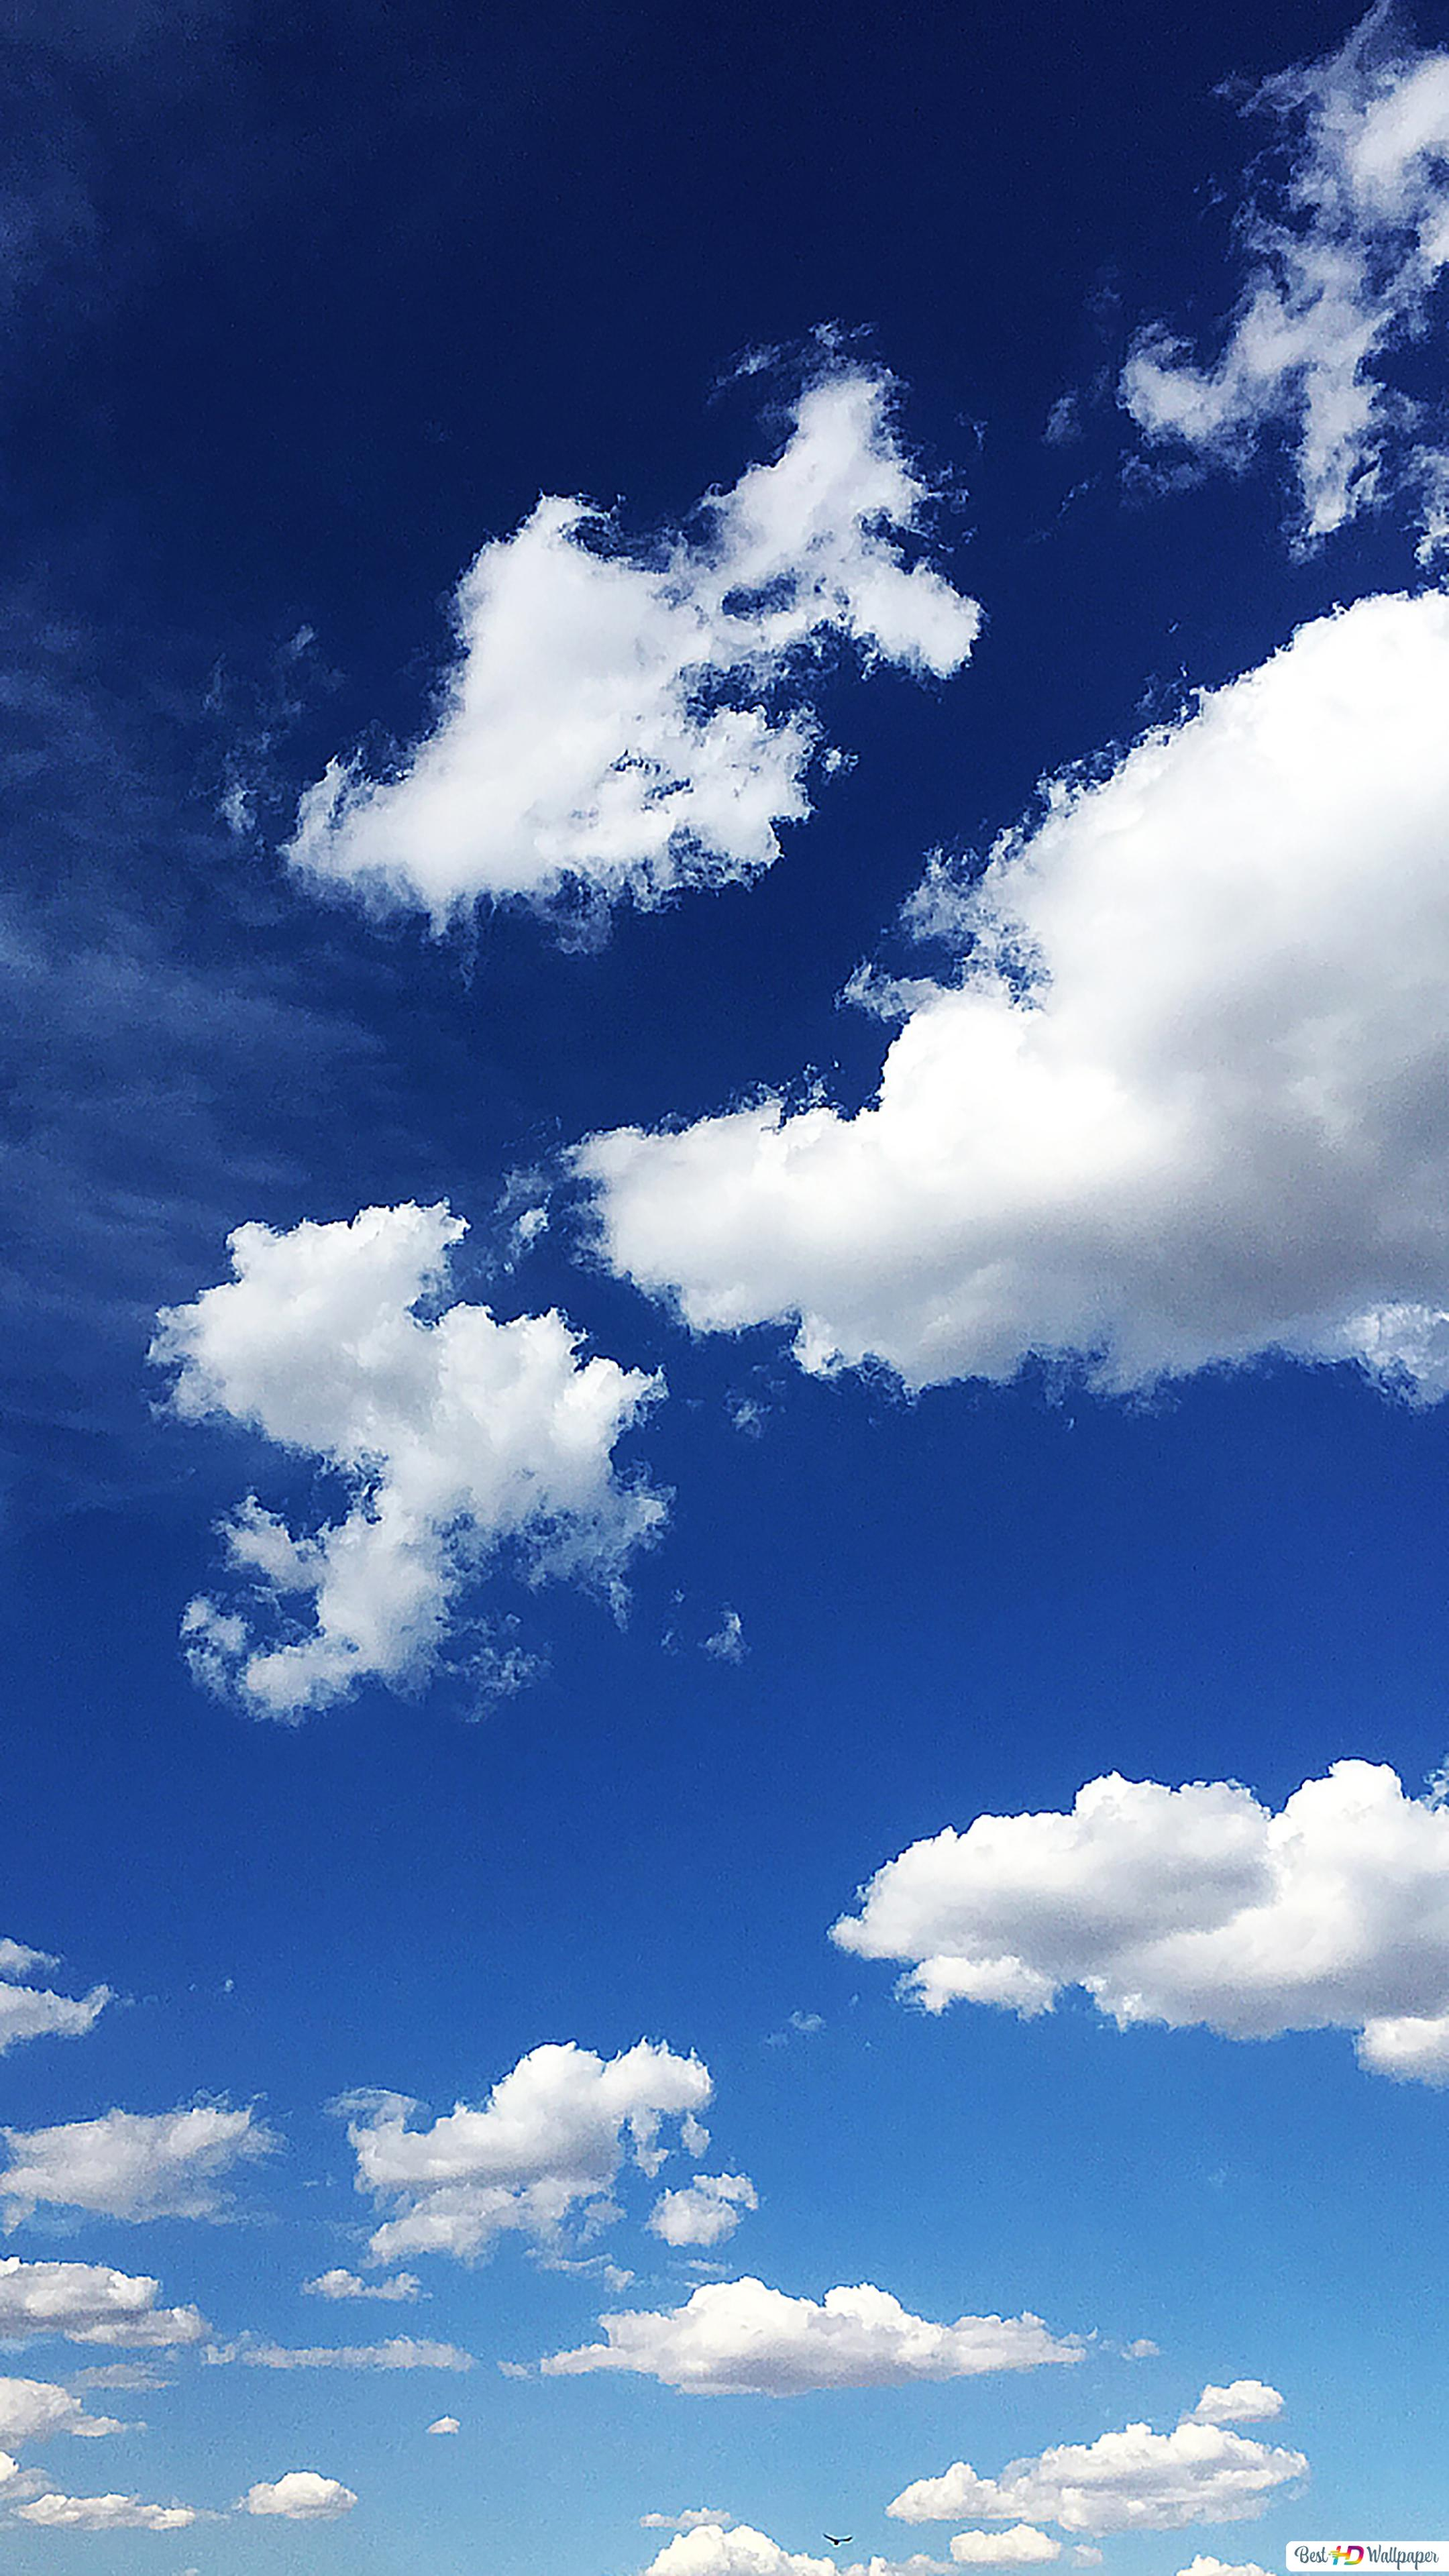 Blue Sky And Clouds Hd Wallpaper Download